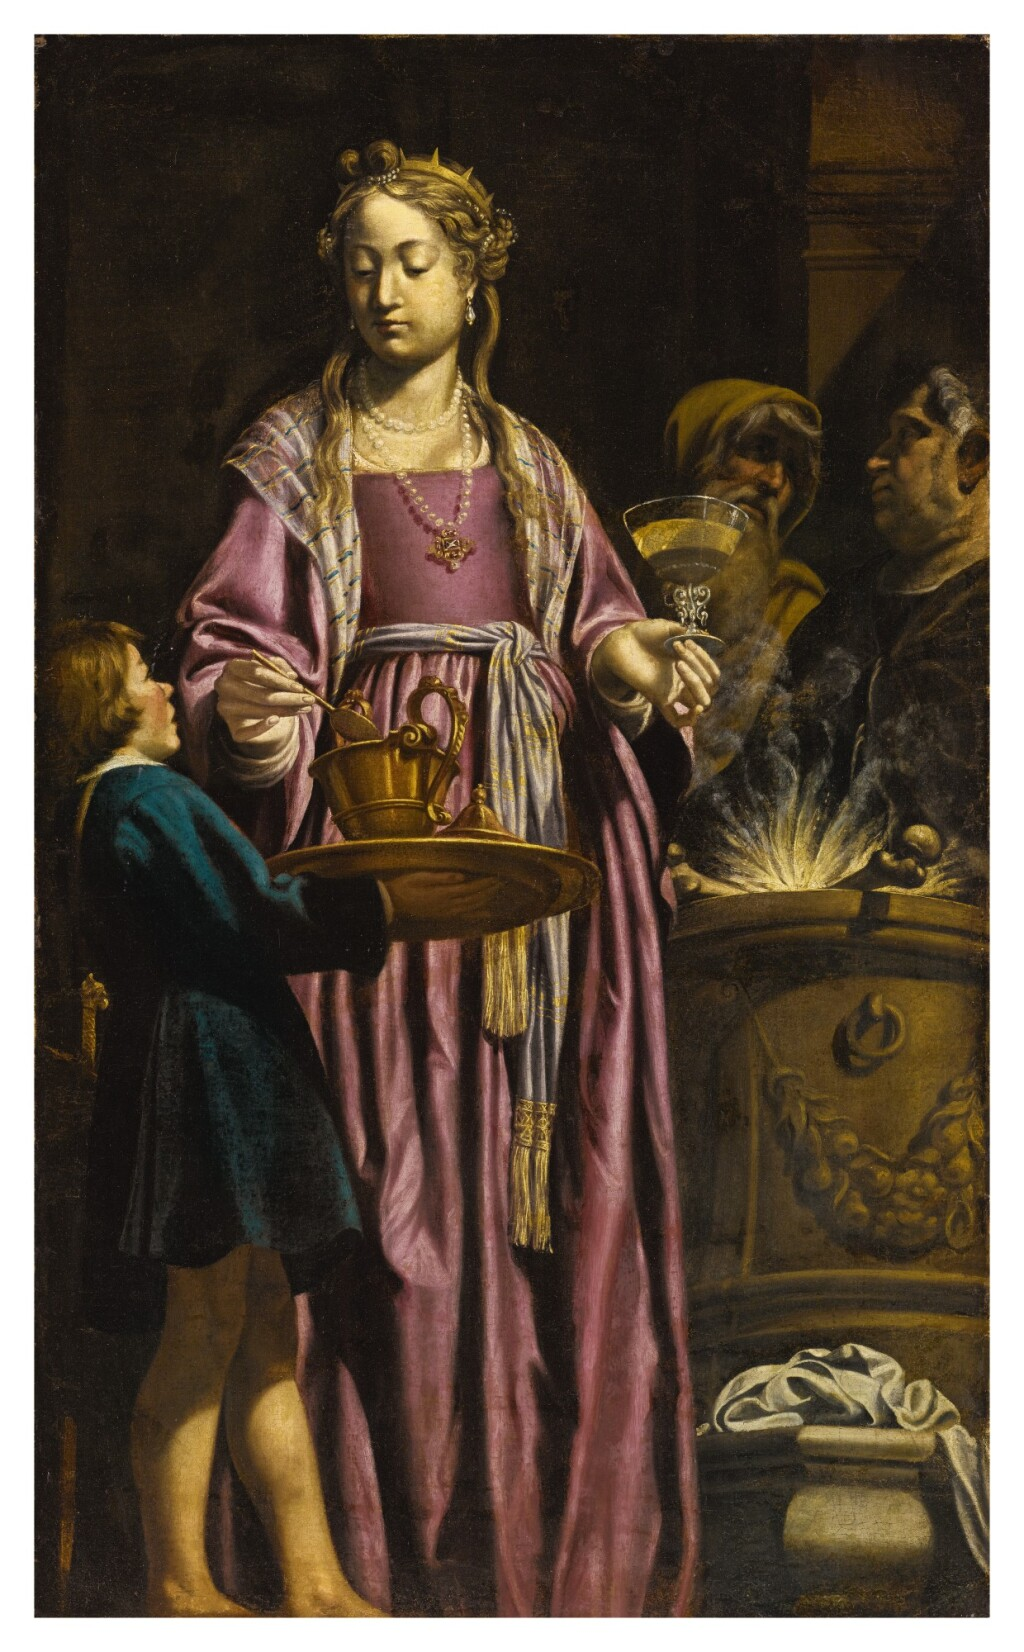 FILIPPO TARCHIANI   ARTEMISIA DRINKING WINE MIXED WITH THE ASHES OF HER HUSBAND, MAUSOLUS